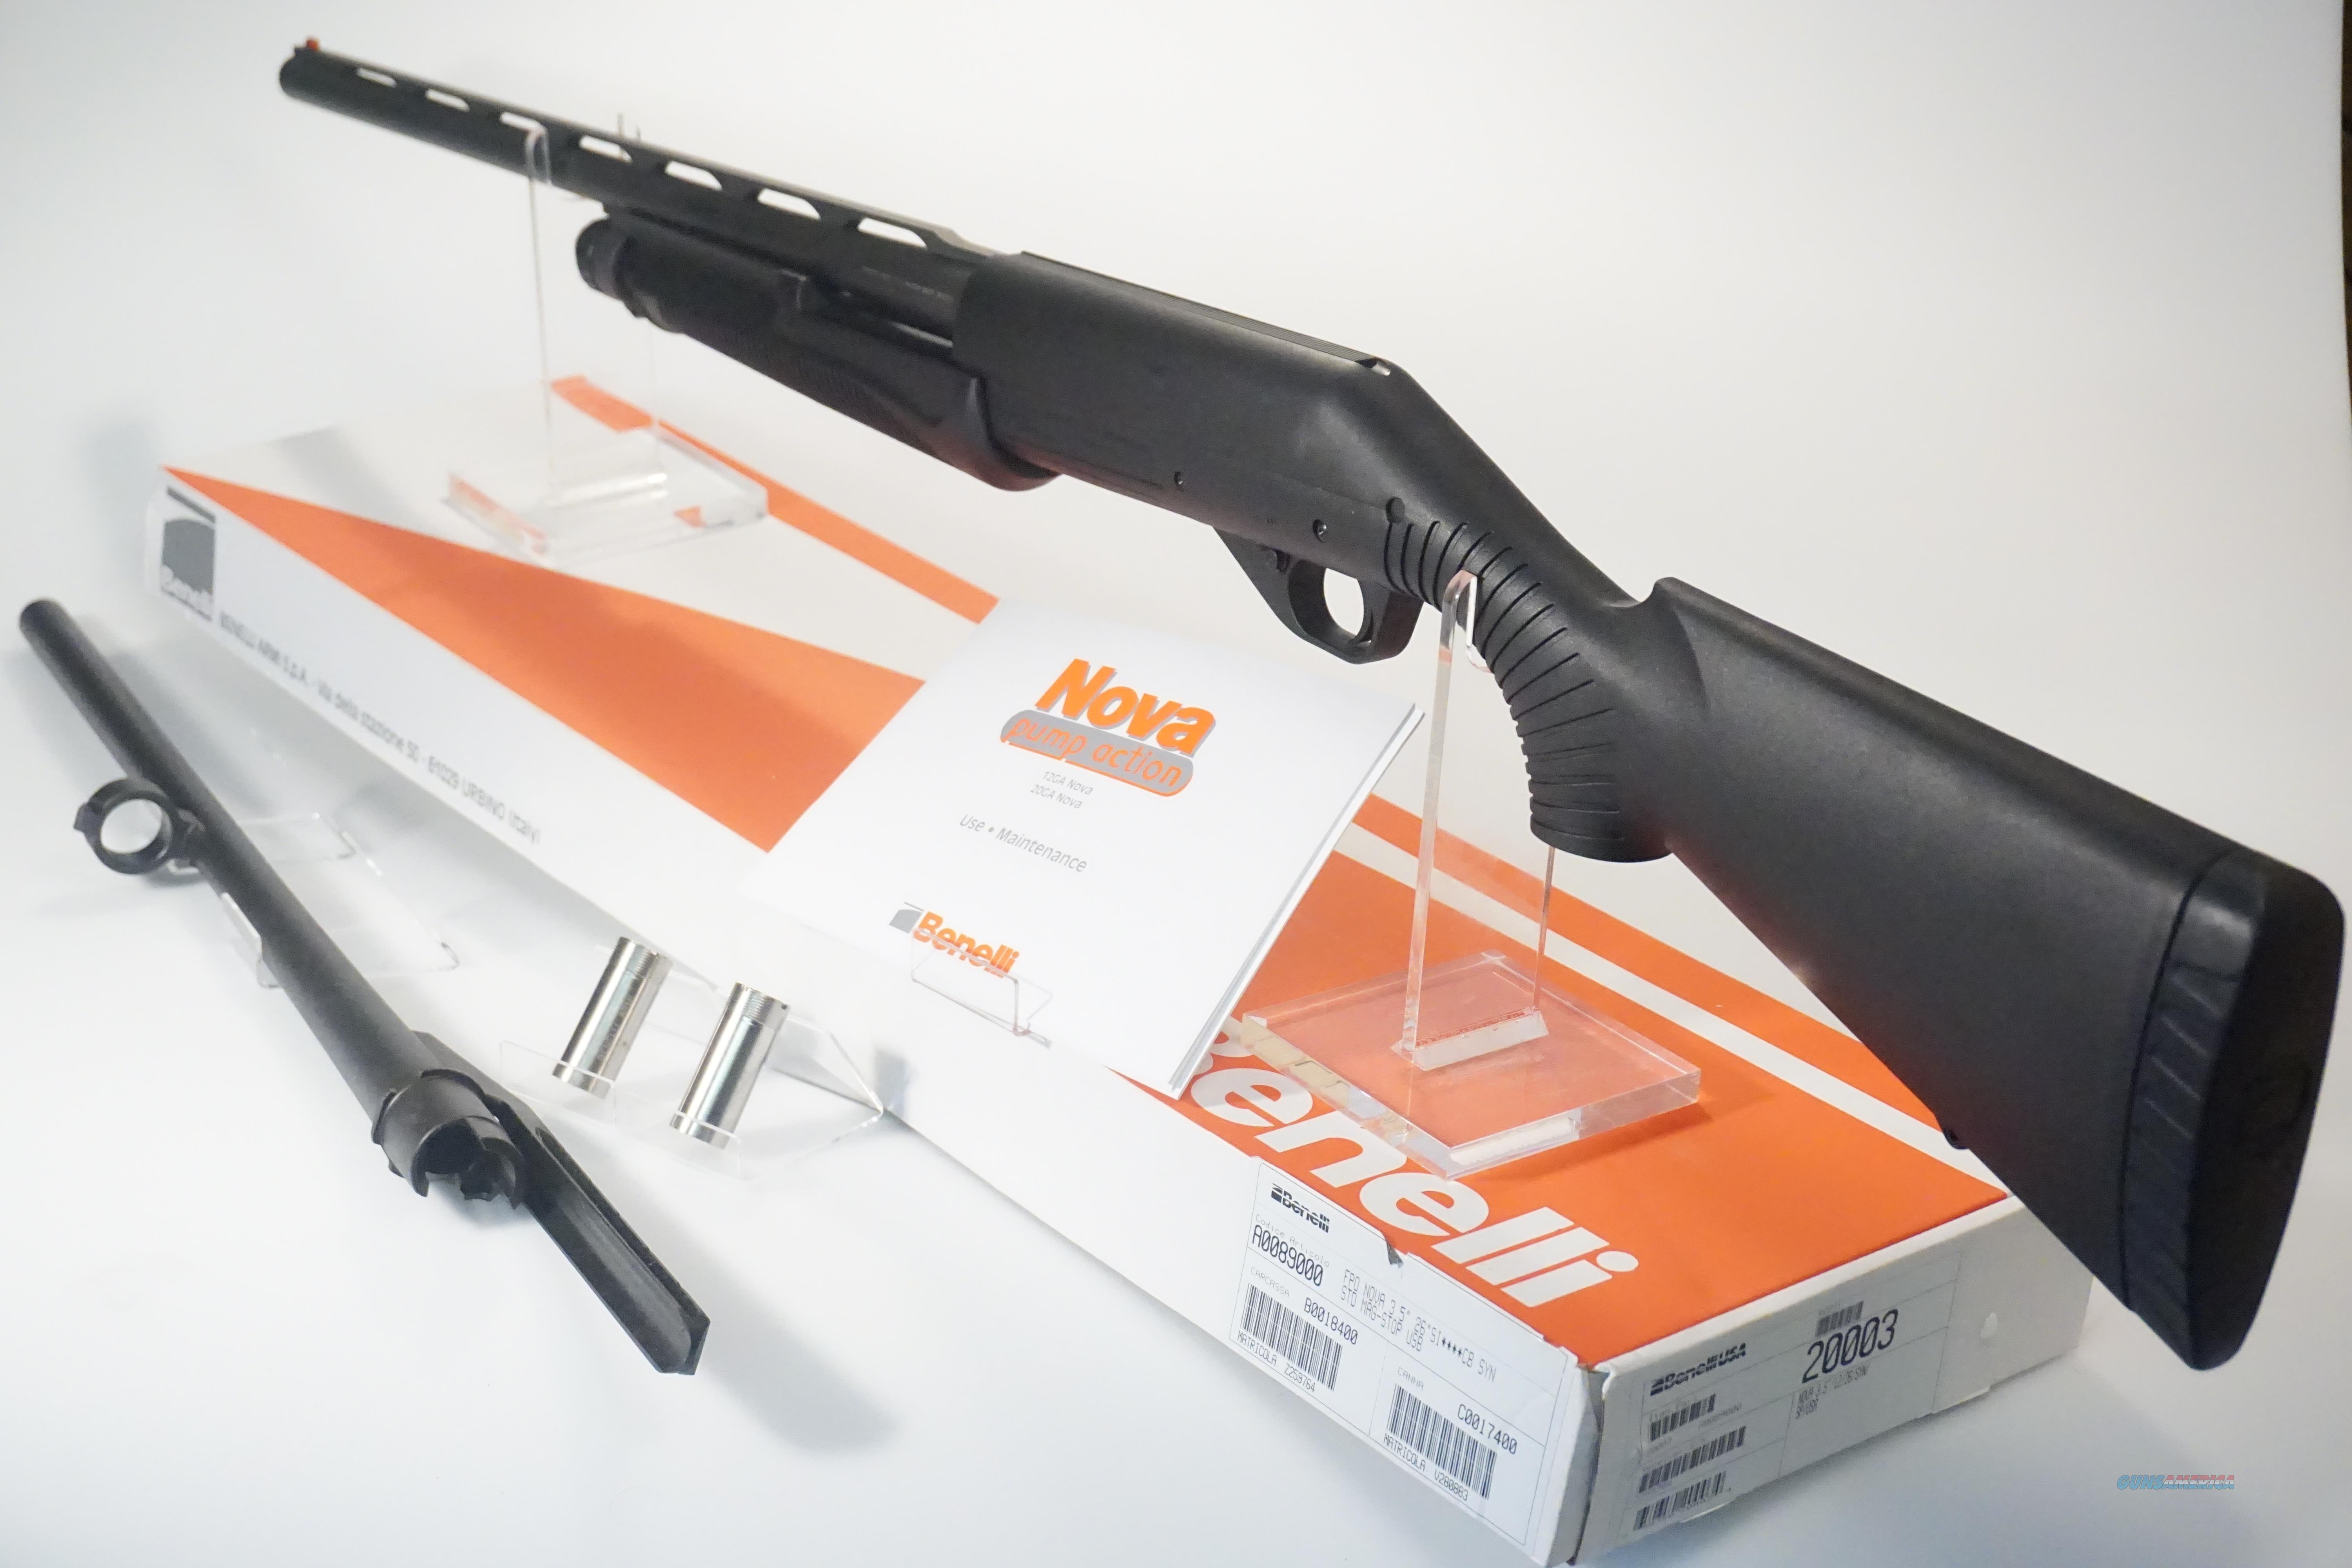 BENELLI NOVA 12GA  *WITH EXTRA SLUG BARREL* *BRAND NEW IN BOX*  Guns > Shotguns > Benelli Shotguns > Tactical